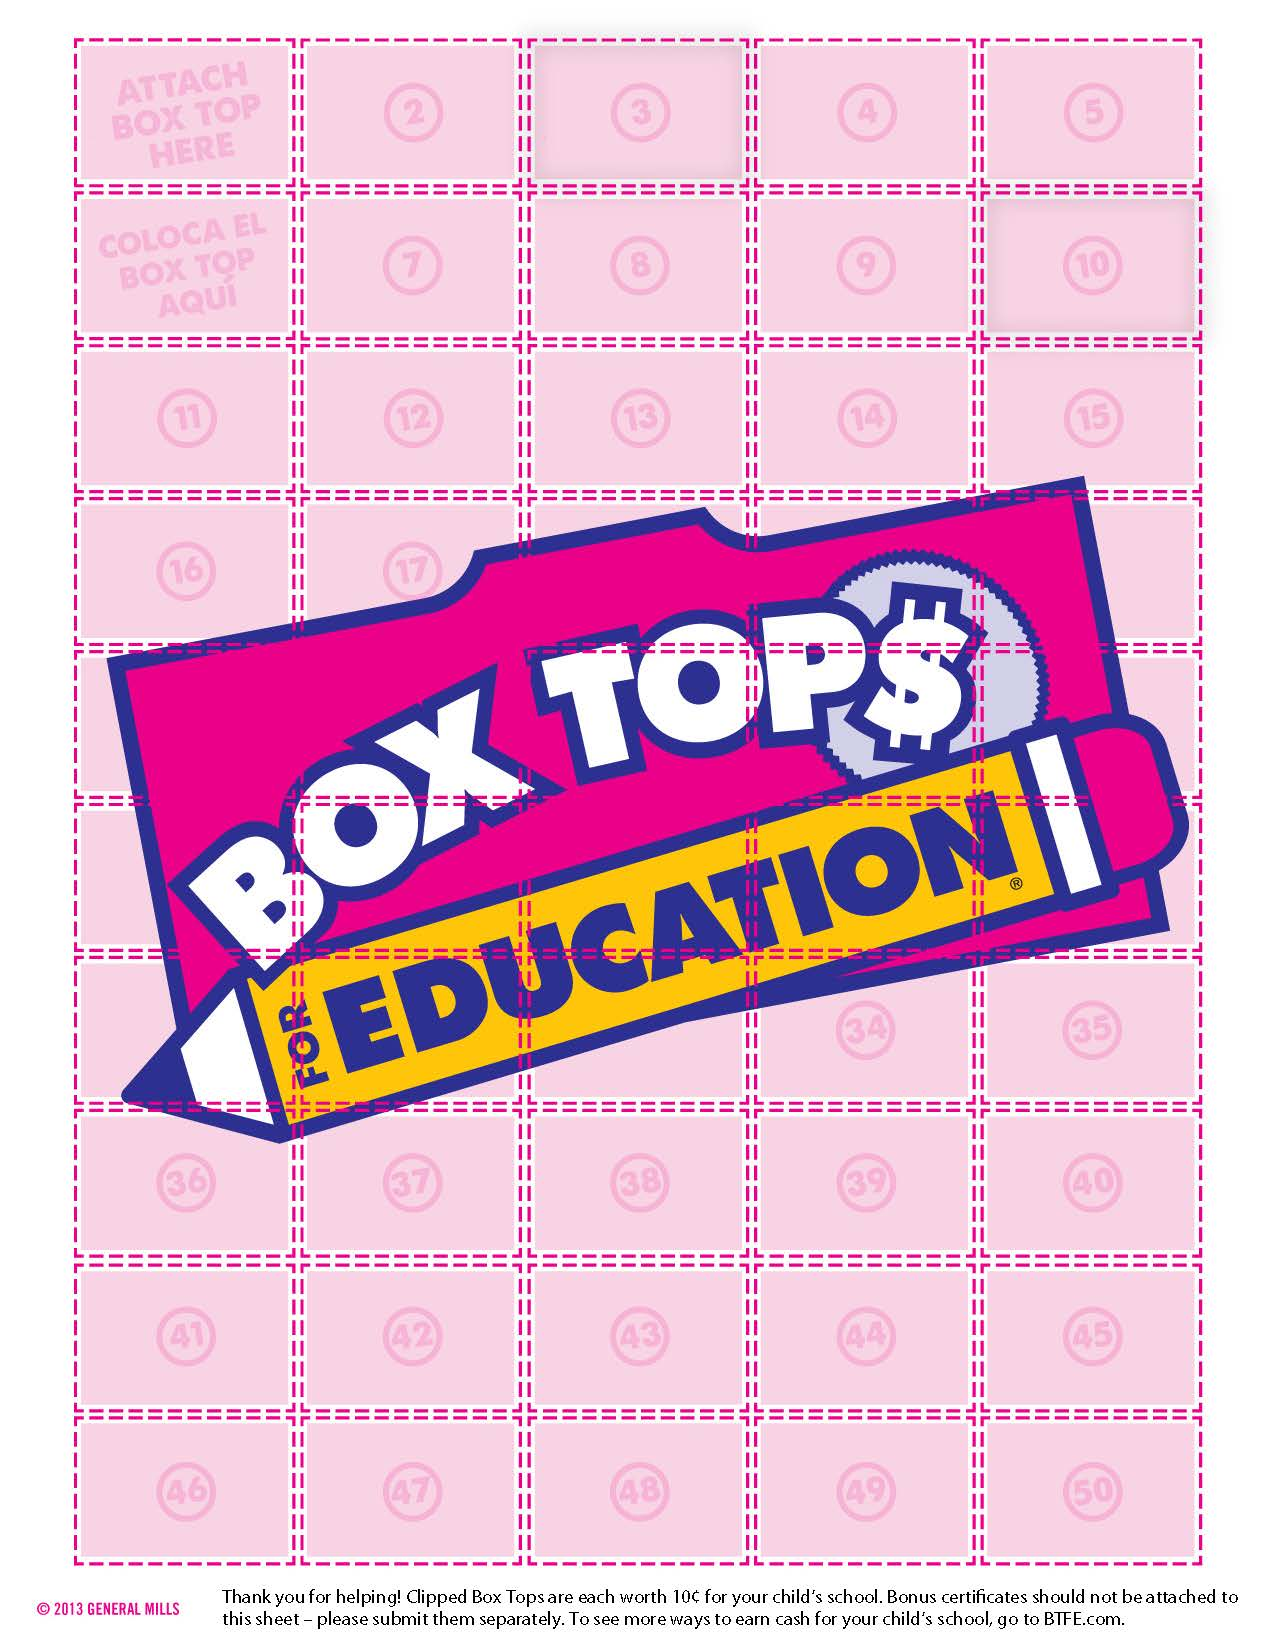 photo about Printable Box Tops Collection Sheets referred to as Box Tops - The Rumson Place Working day Faculty